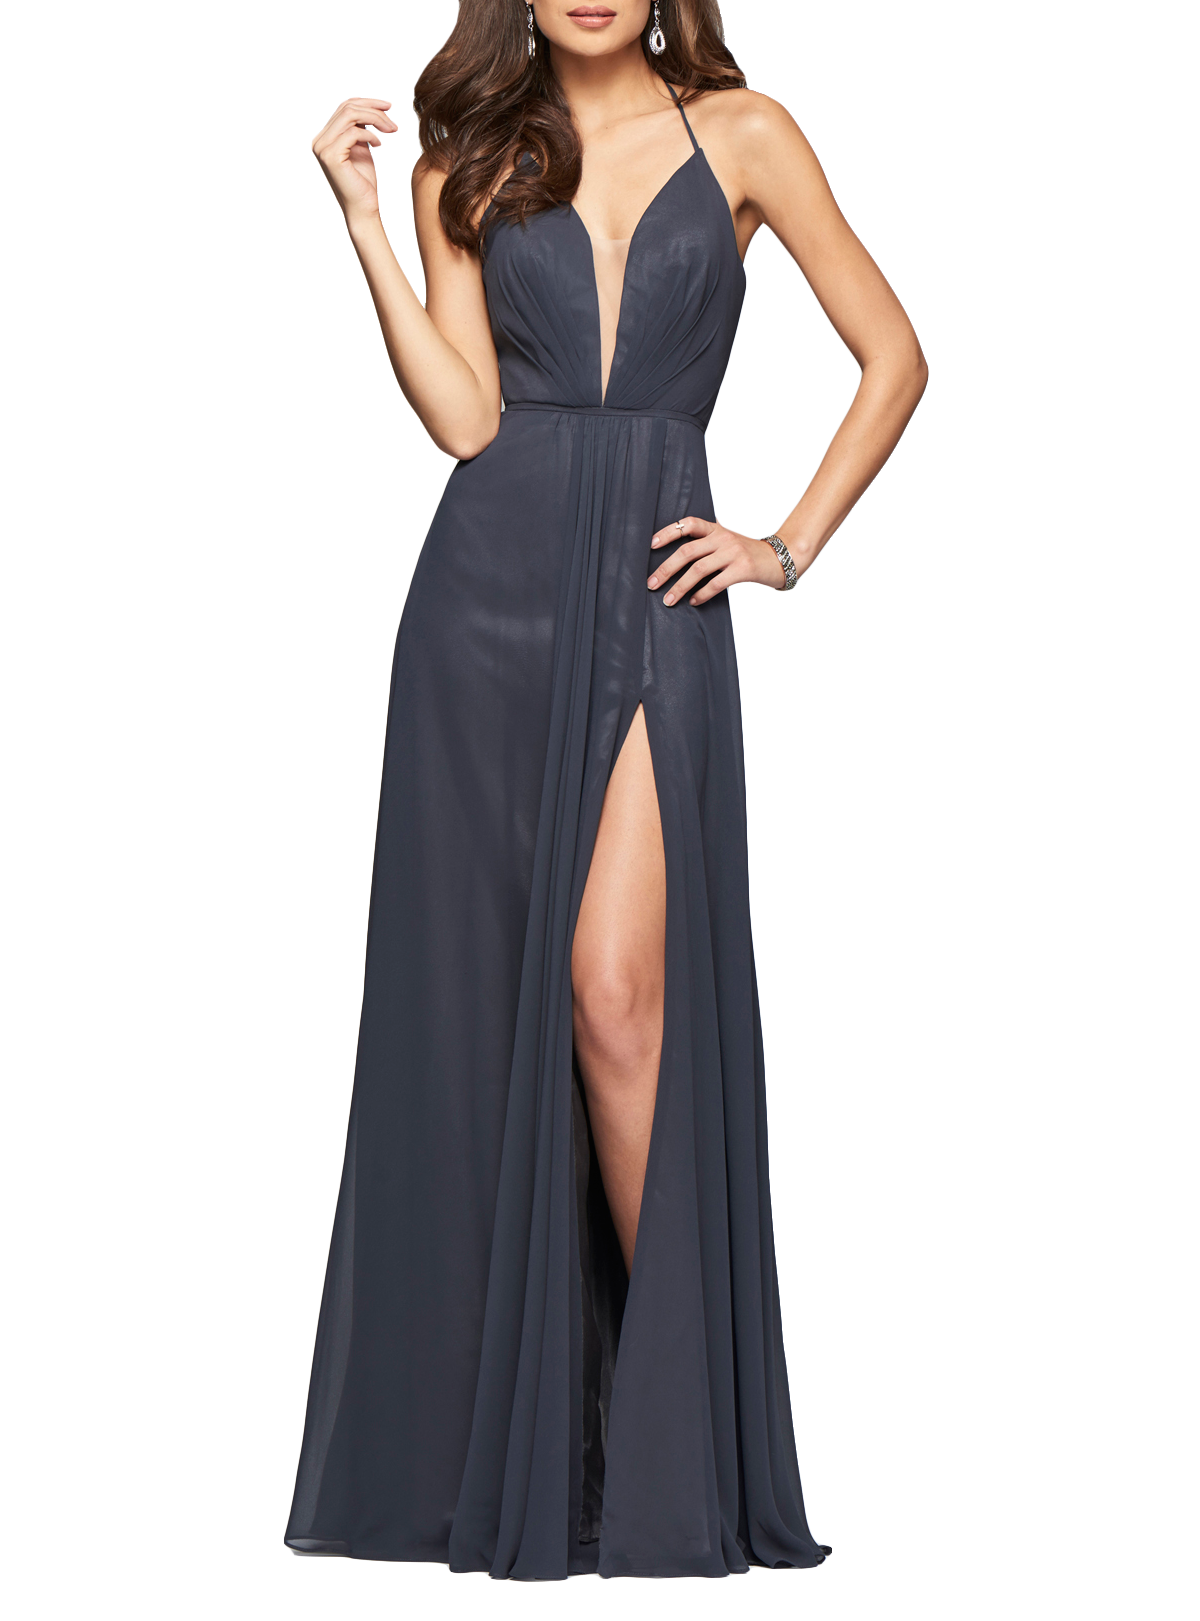 Tayla Gown Image